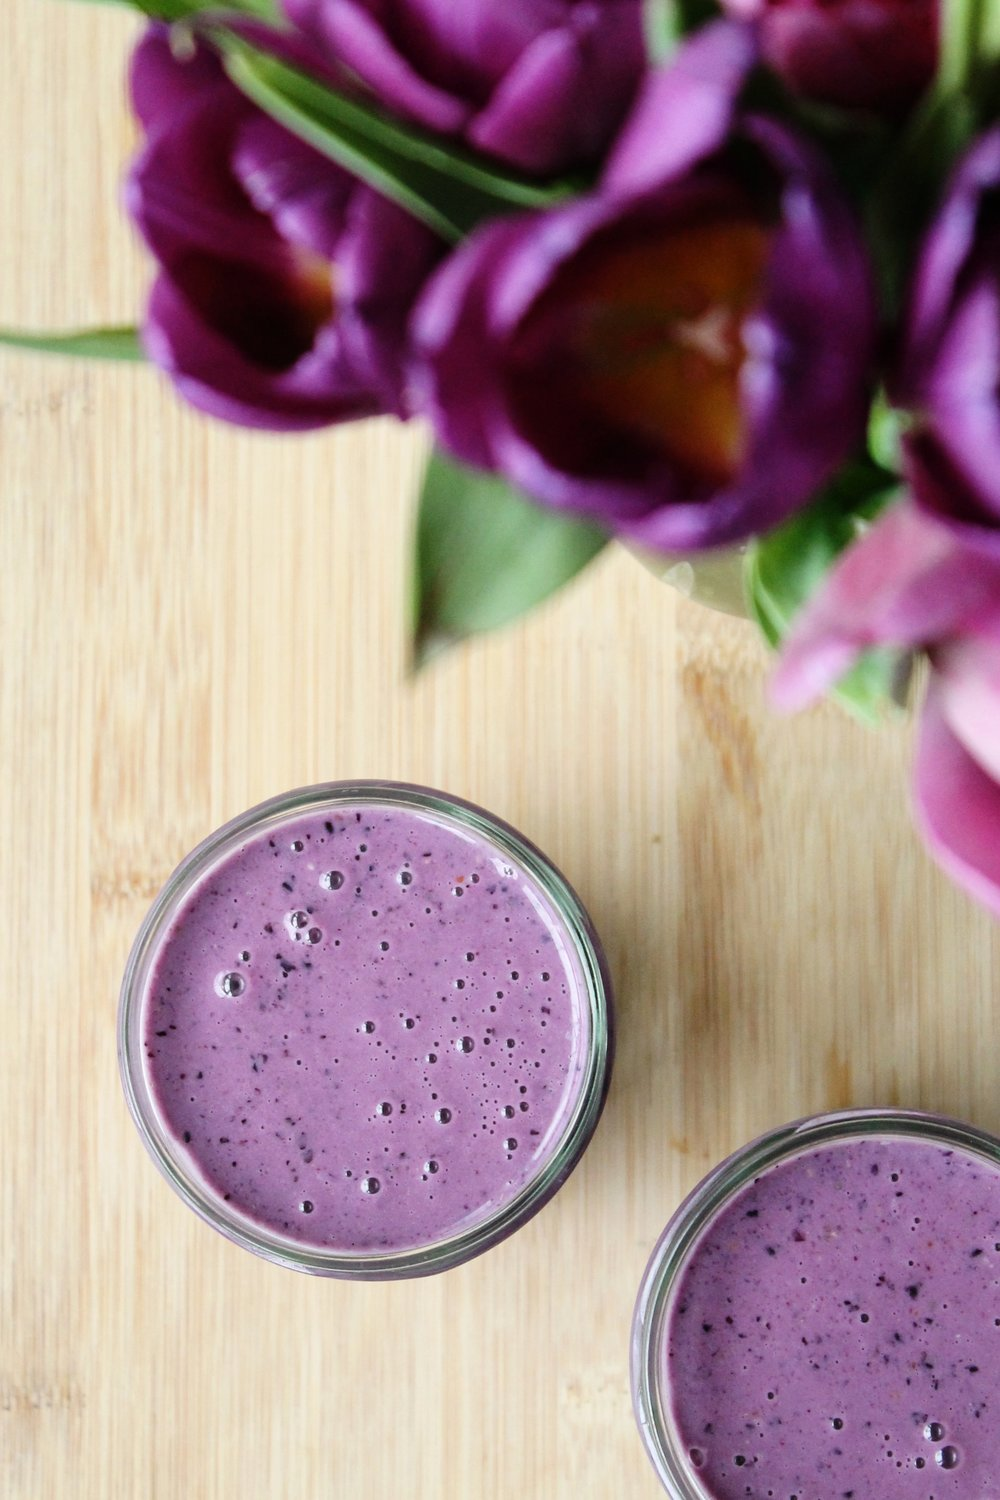 Peter's blueberry protein smoothie | Beloved Kitchen